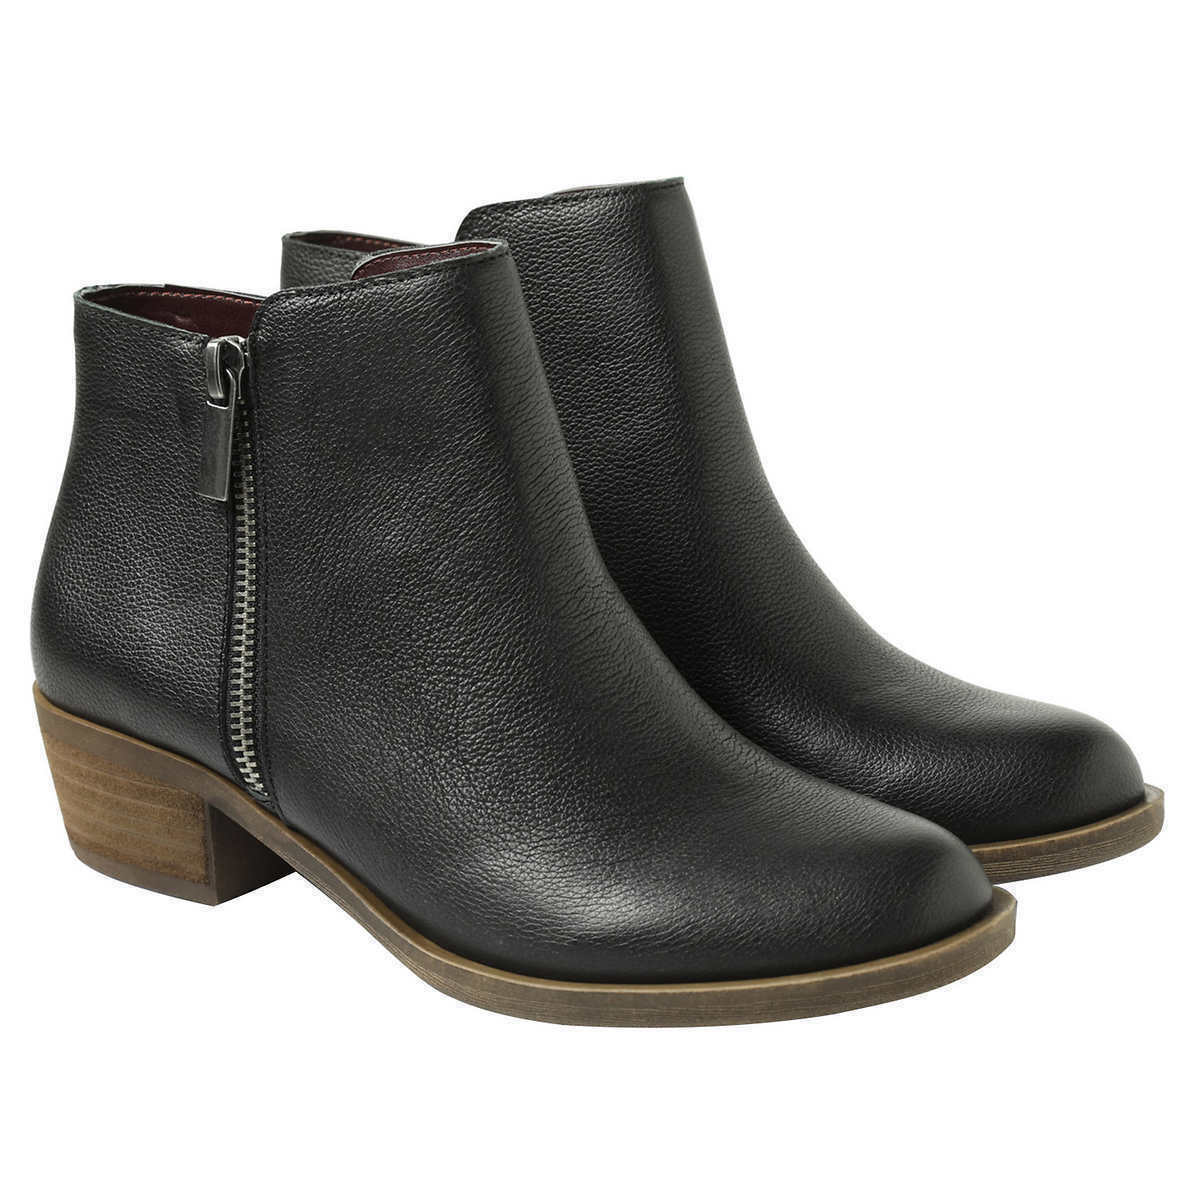 New Kensie Women's Black Leather Ghita Short Ankle Boots 6.5 9.5 7.5 8.5 10 NWOB